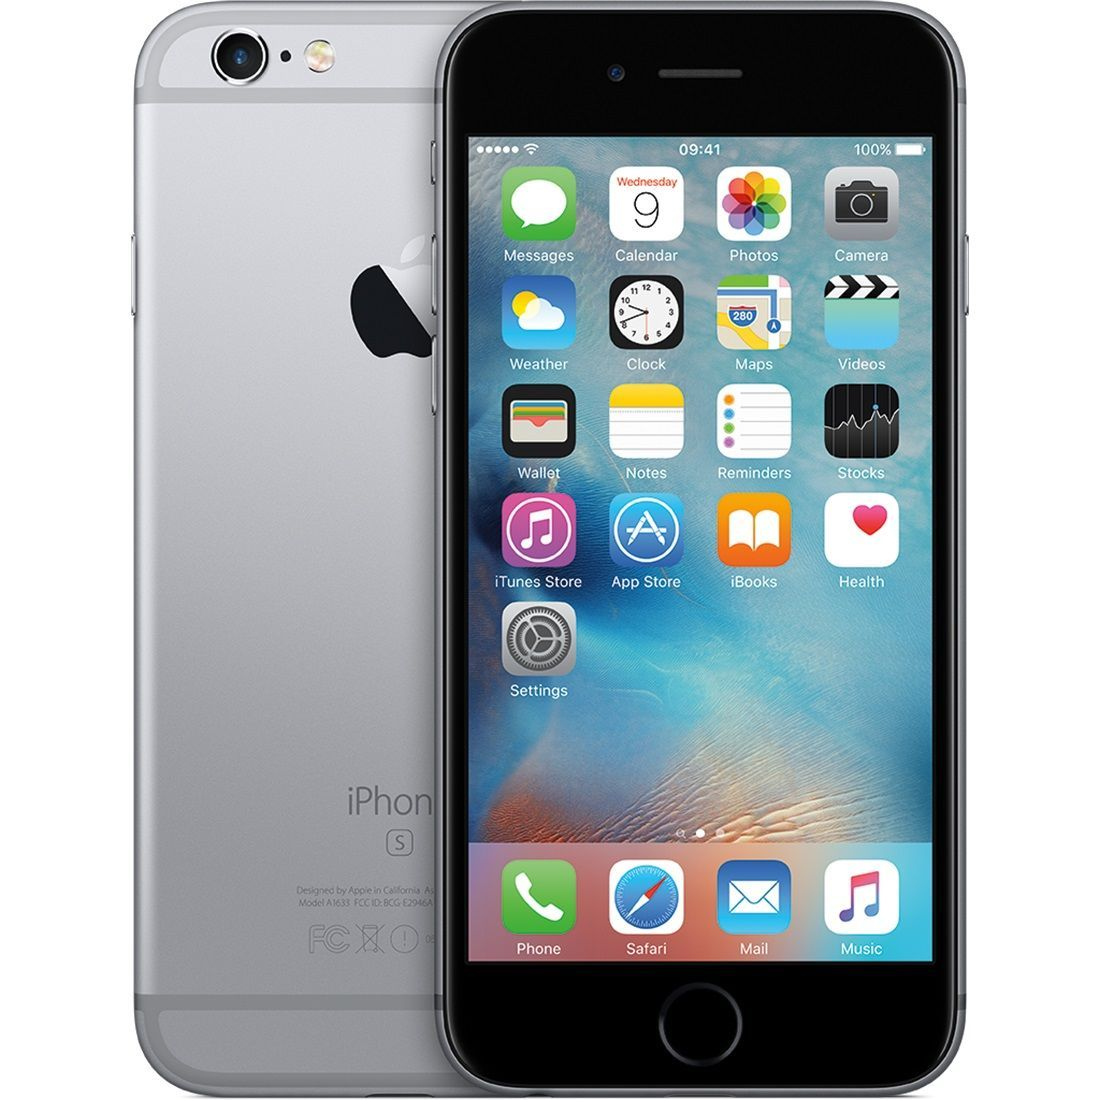 Telefon Mobil Apple Iphone 6S 32GB Single SIM 4G Space Gray title=Telefon Mobil Apple Iphone 6S 32GB Single SIM 4G Space Gray